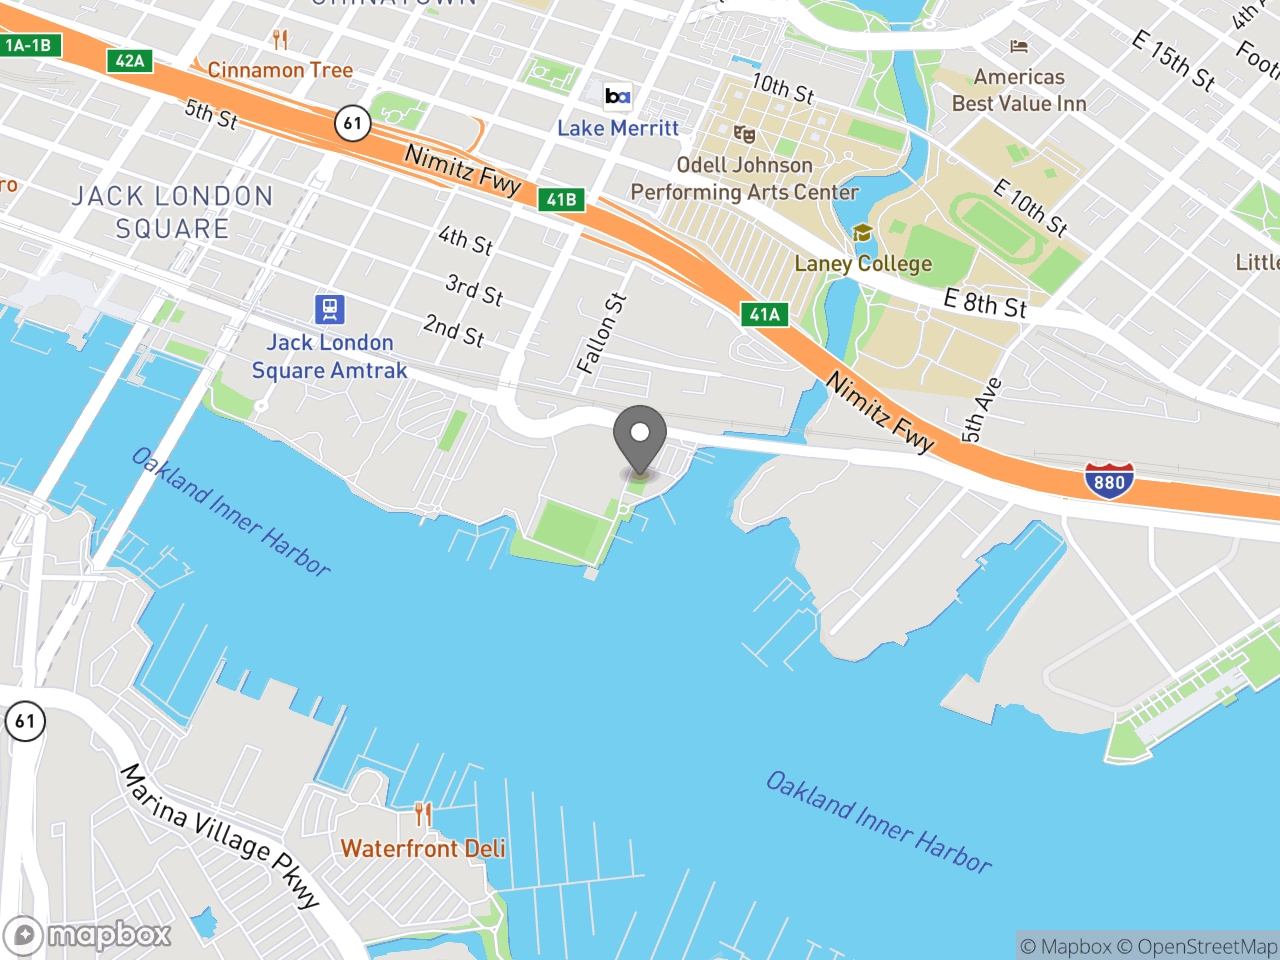 Map location for Boating at Jack London Aquatic Center, located at 115 Embarcadero in Oakland, CA 94606